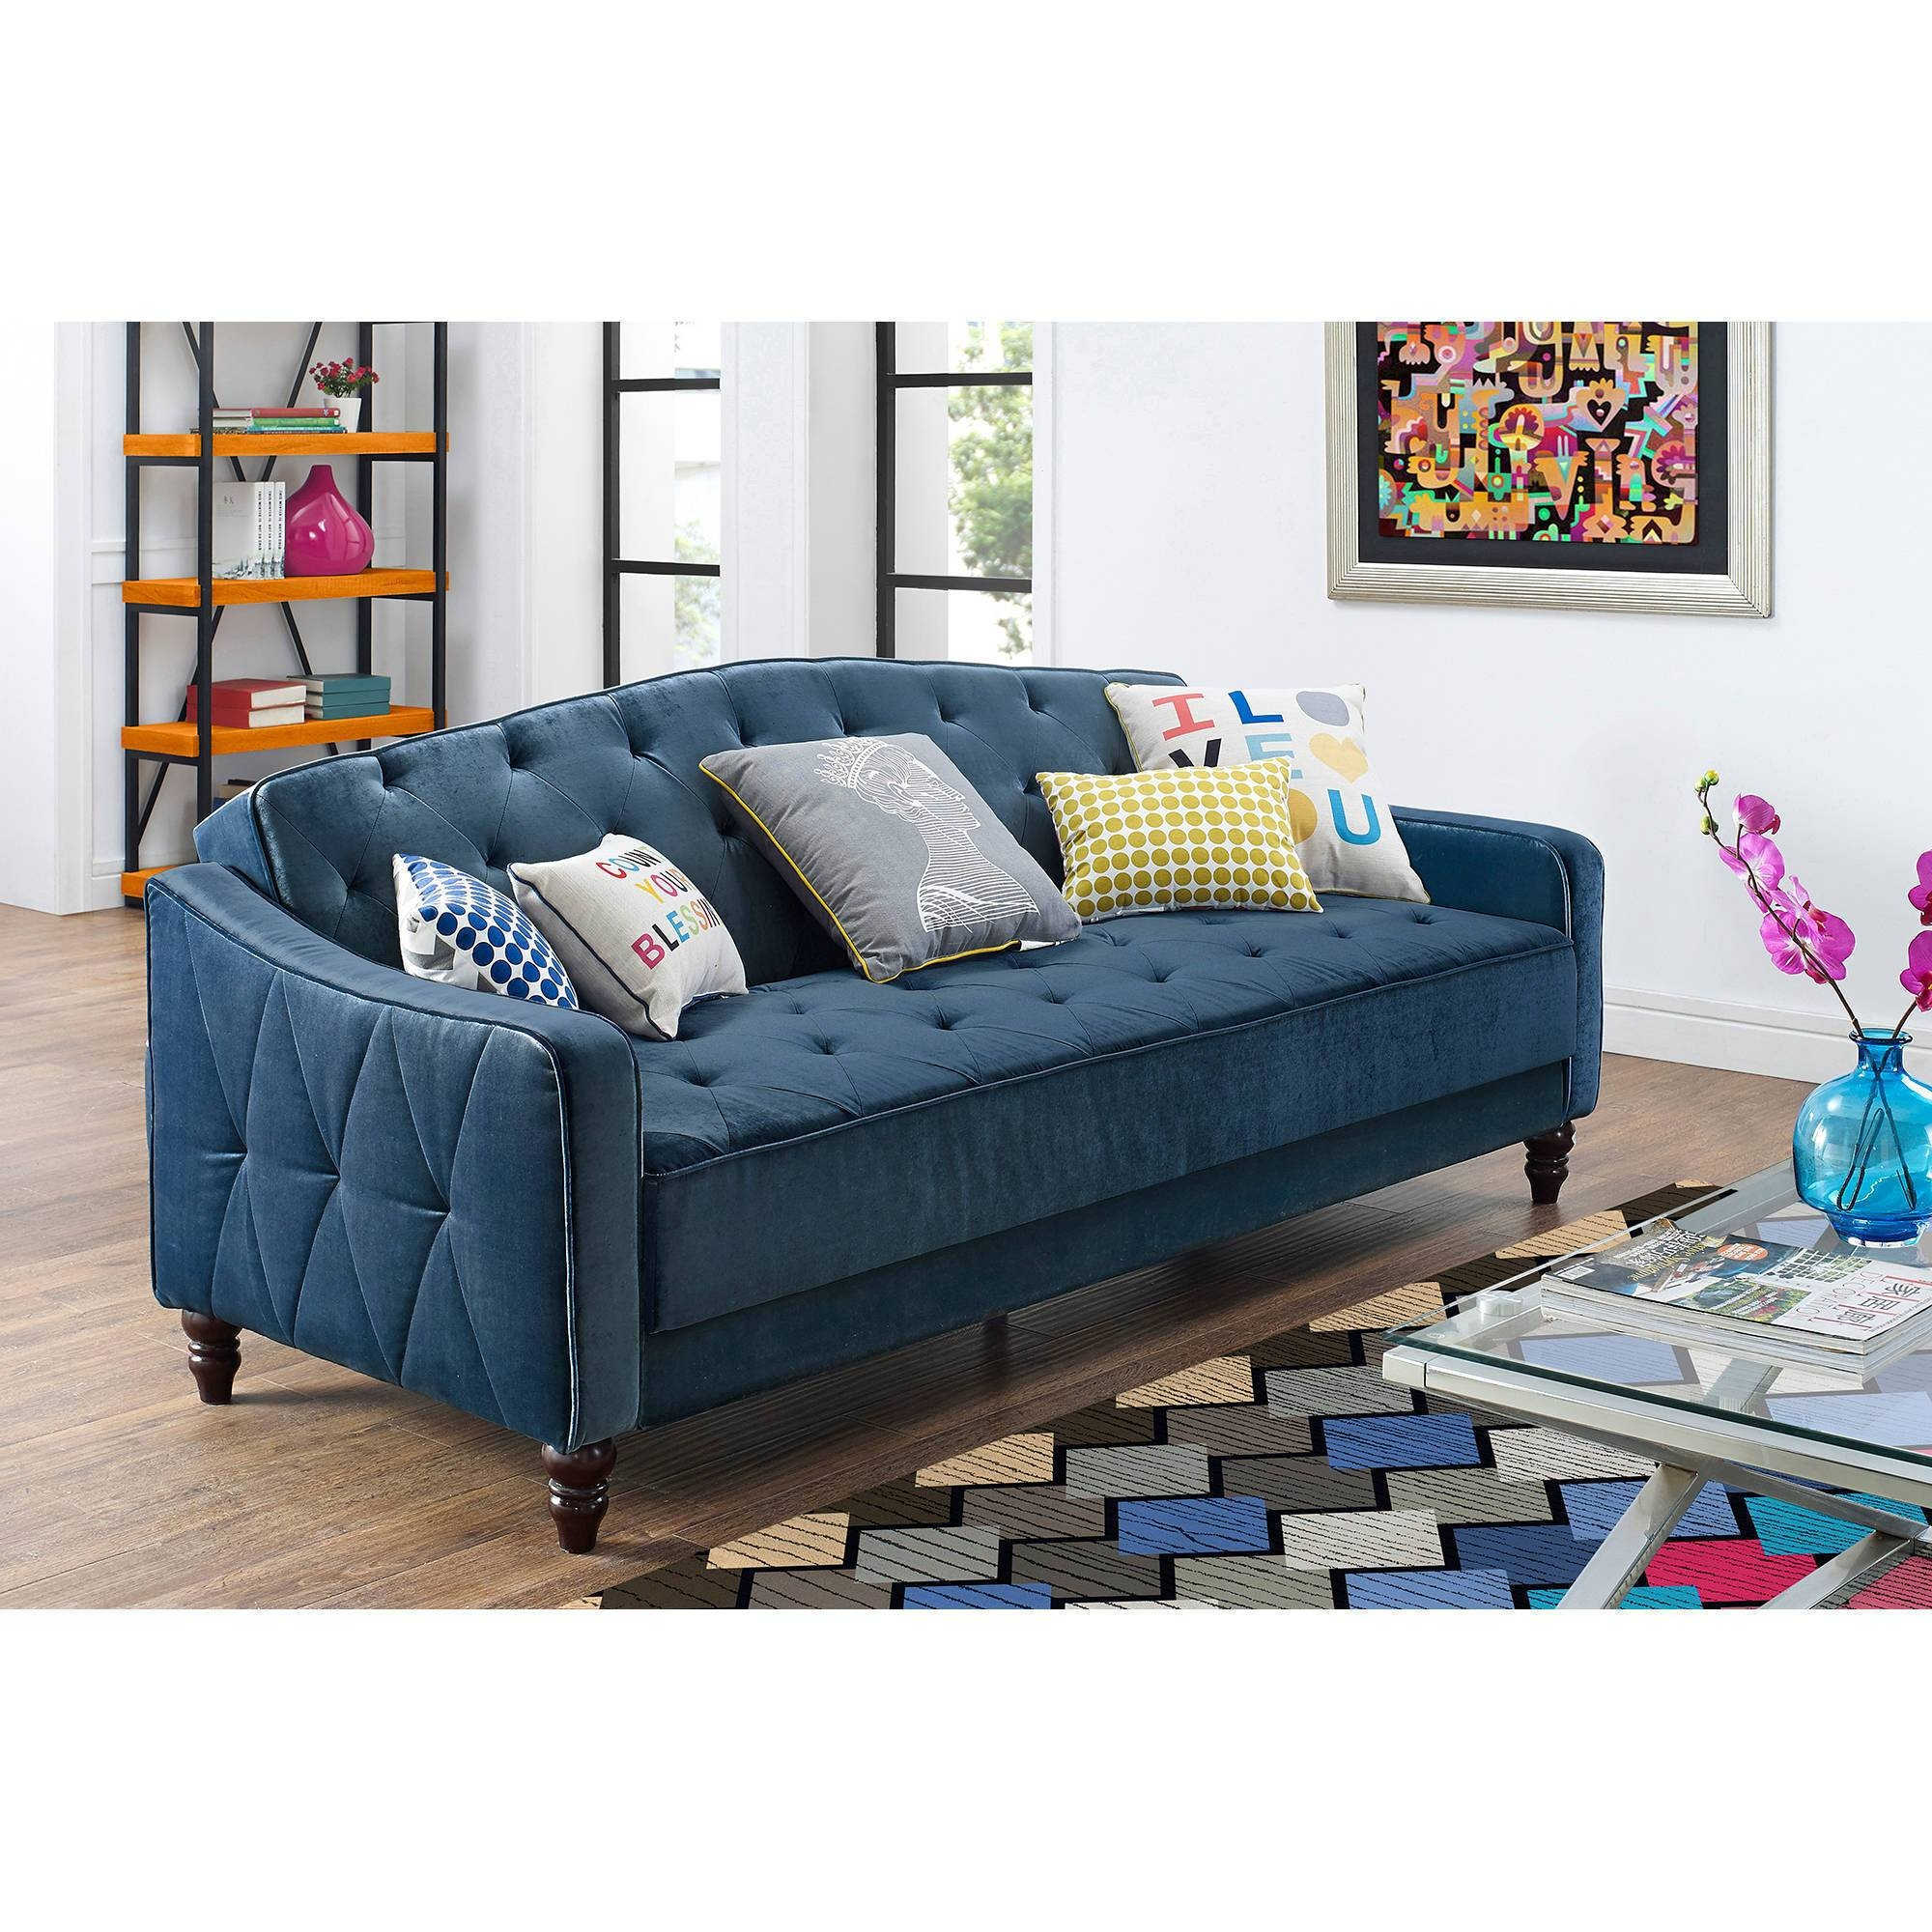 Futons, Futon Beds, Sofa Beds - Walmart throughout Mini Sofa Beds (Image 10 of 30)